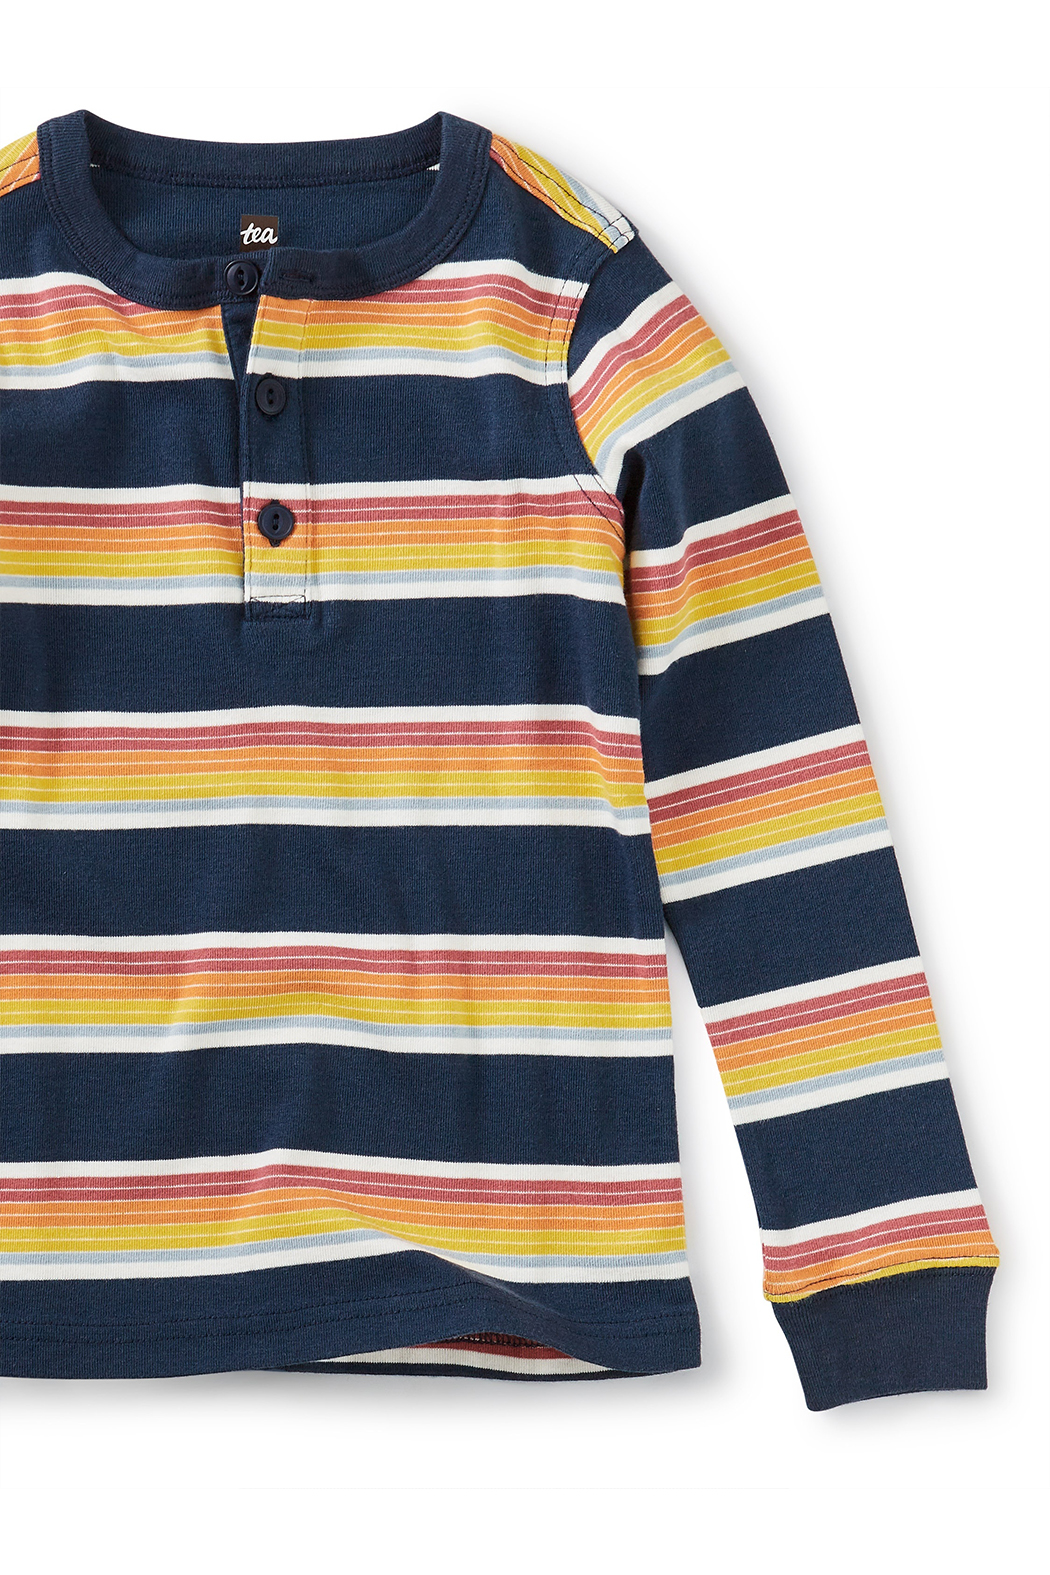 Tea Collection Long Sleeve Striped Henley Top - Front Full Image